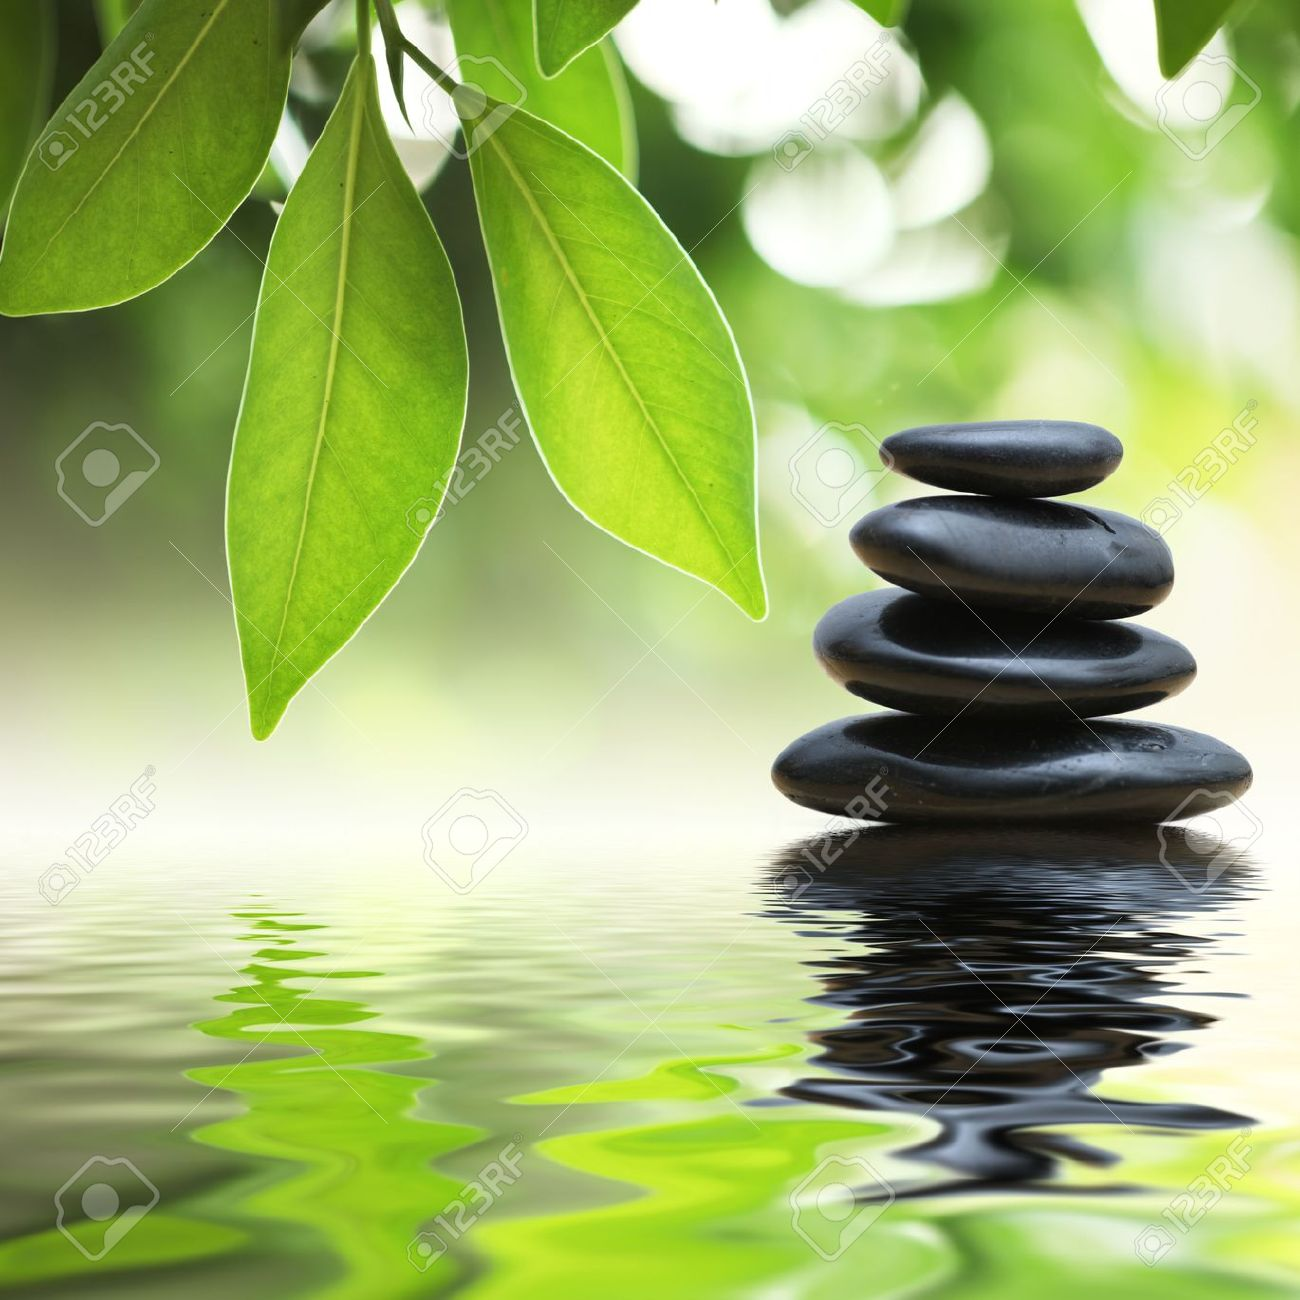 Grean leaves over zen stones pyramid on water surface Stock Photo - 5948718